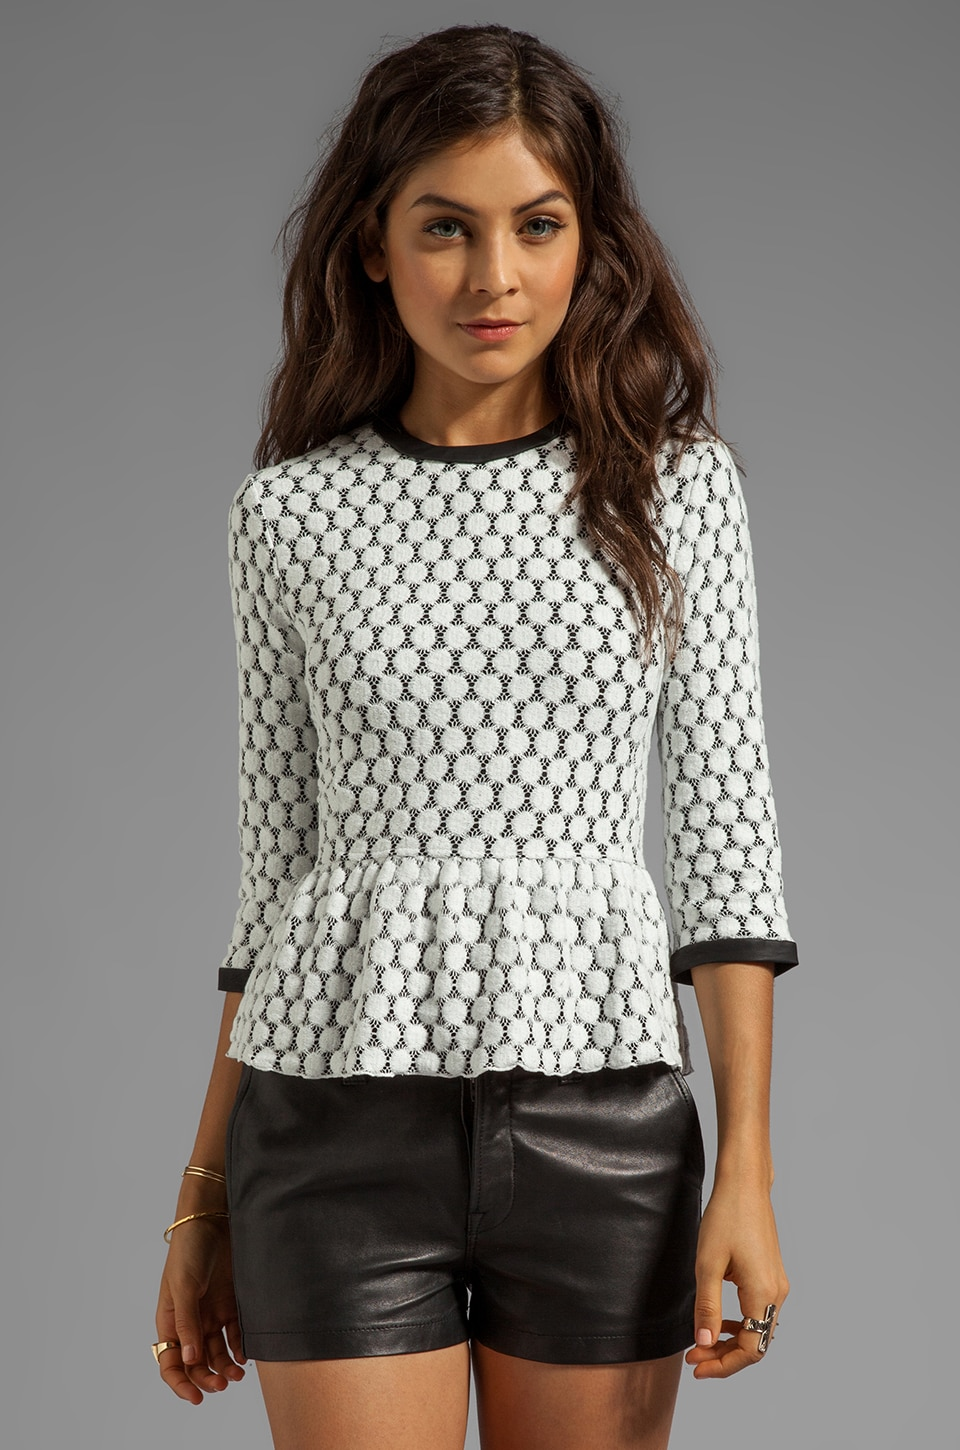 Dolce Vita Ceri Dot Zebra Lace Top in White Dot